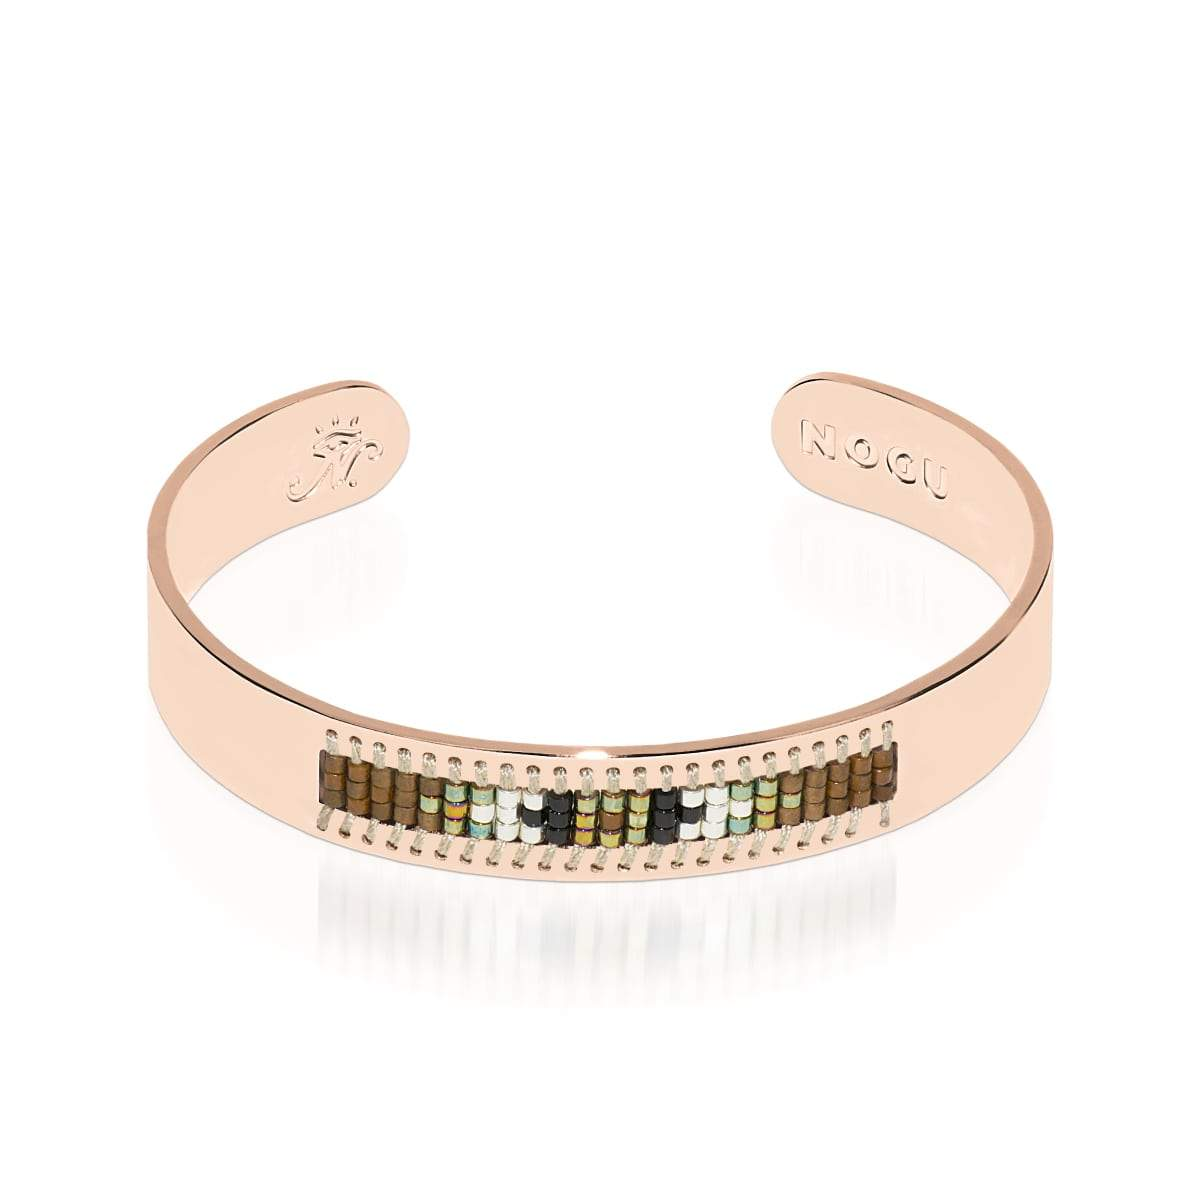 Rolling Hills | Or rose 18 carats | Boho Bangle